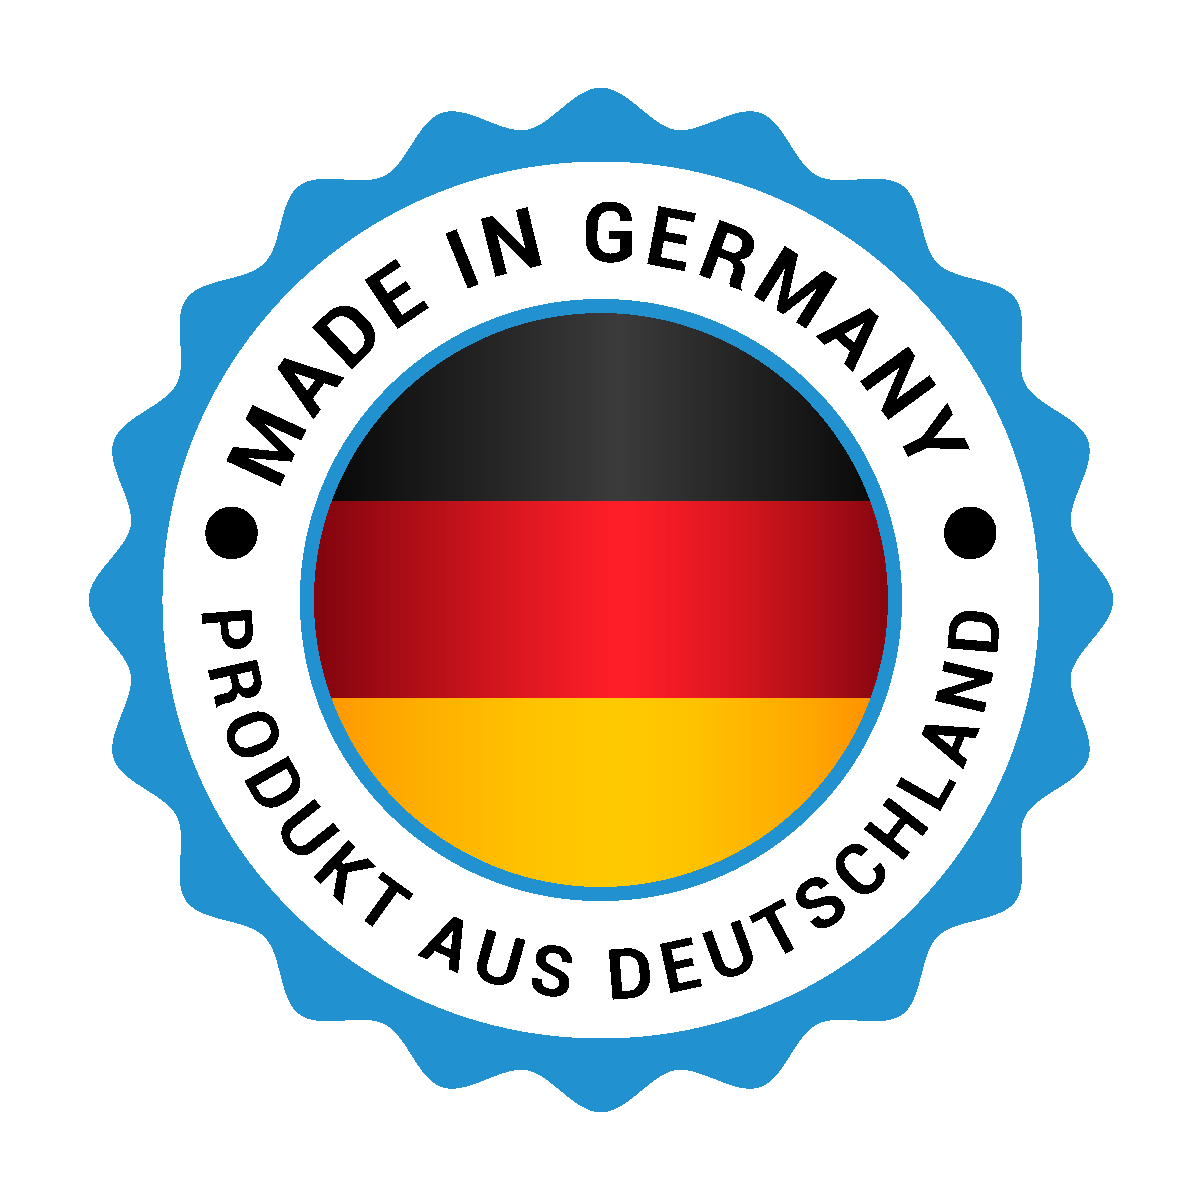 Made in Germany!